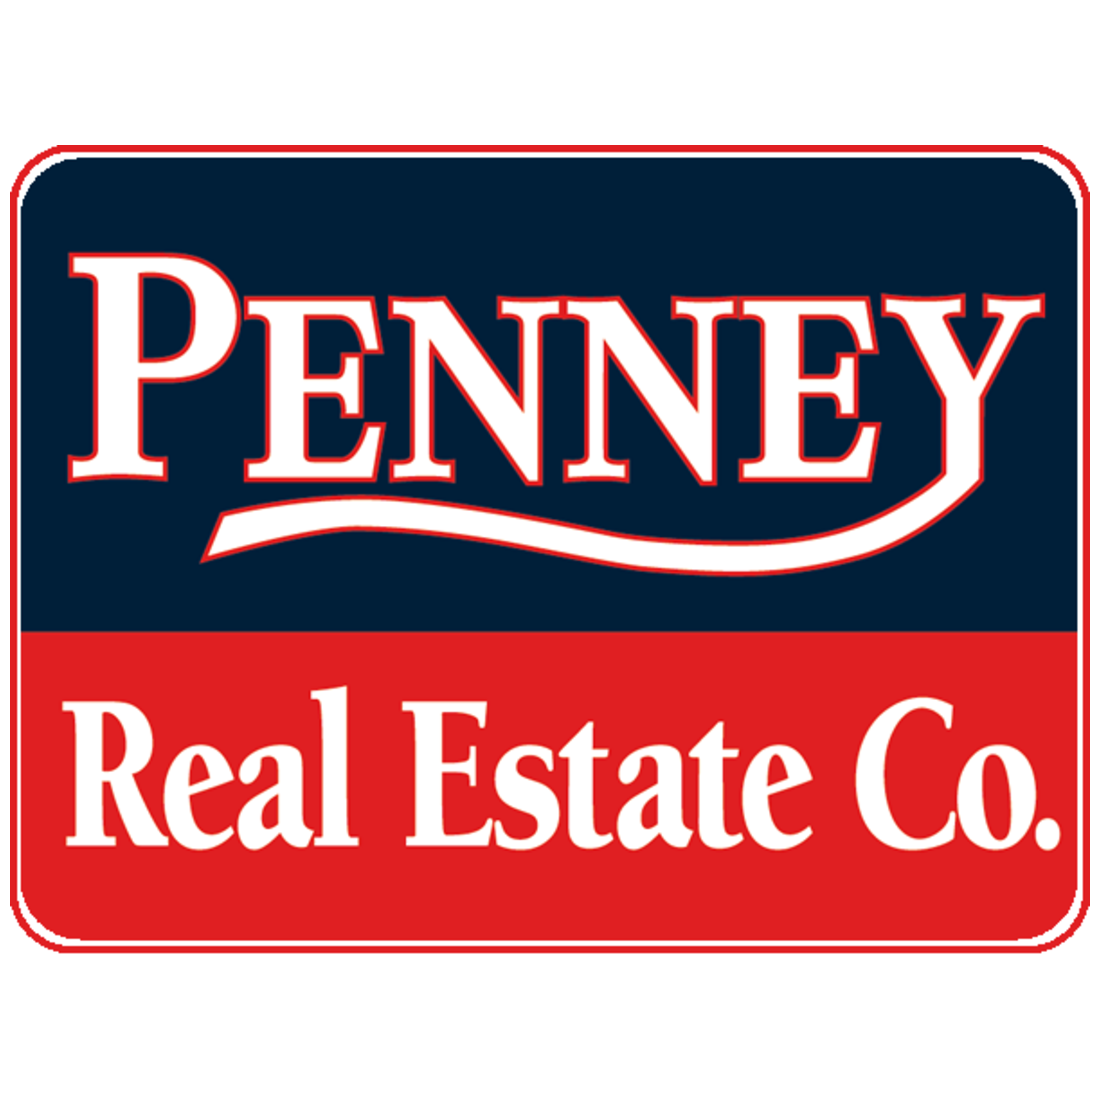 Penney Real Estate Company